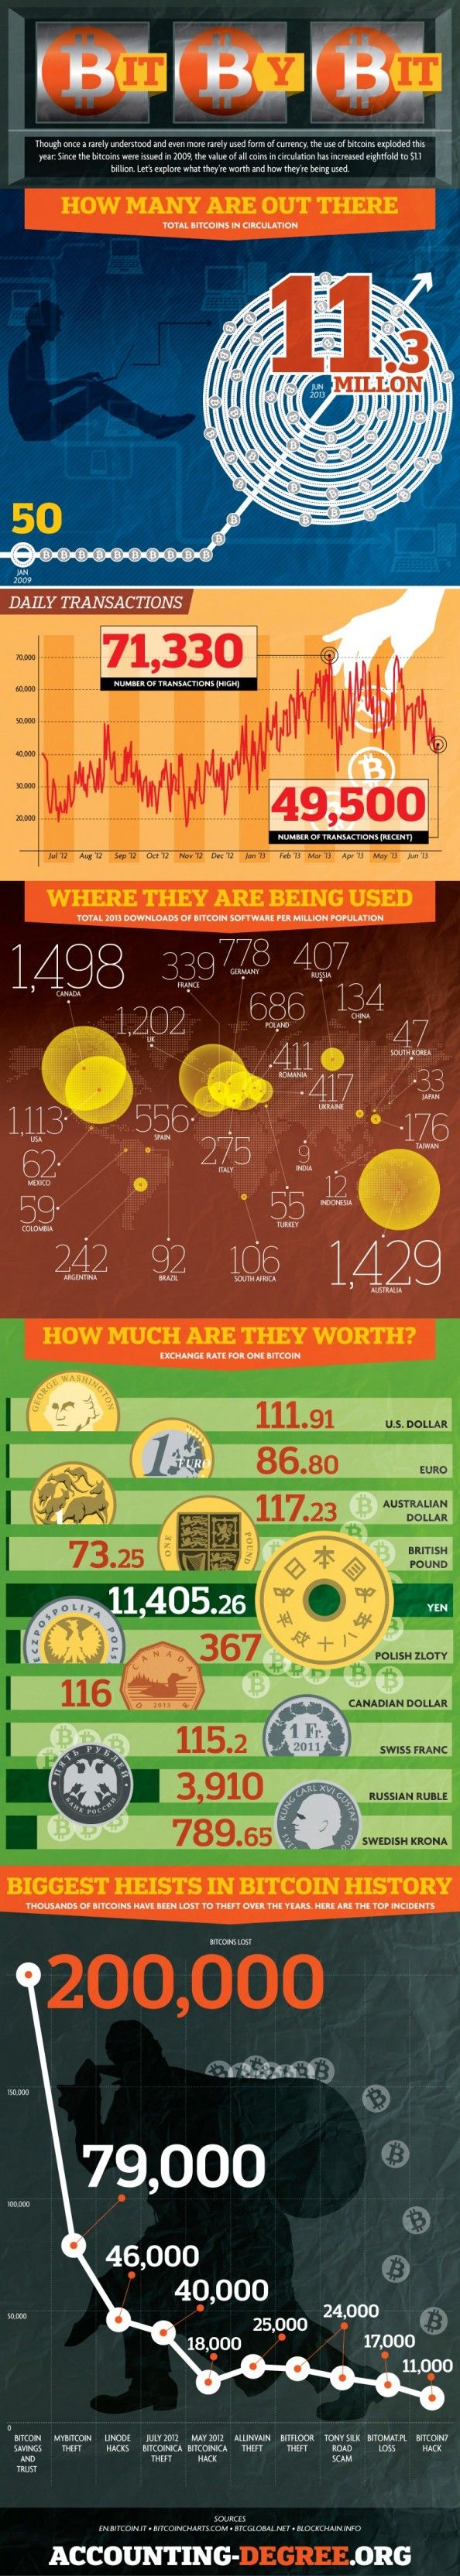 how many bitcoins are in circulation